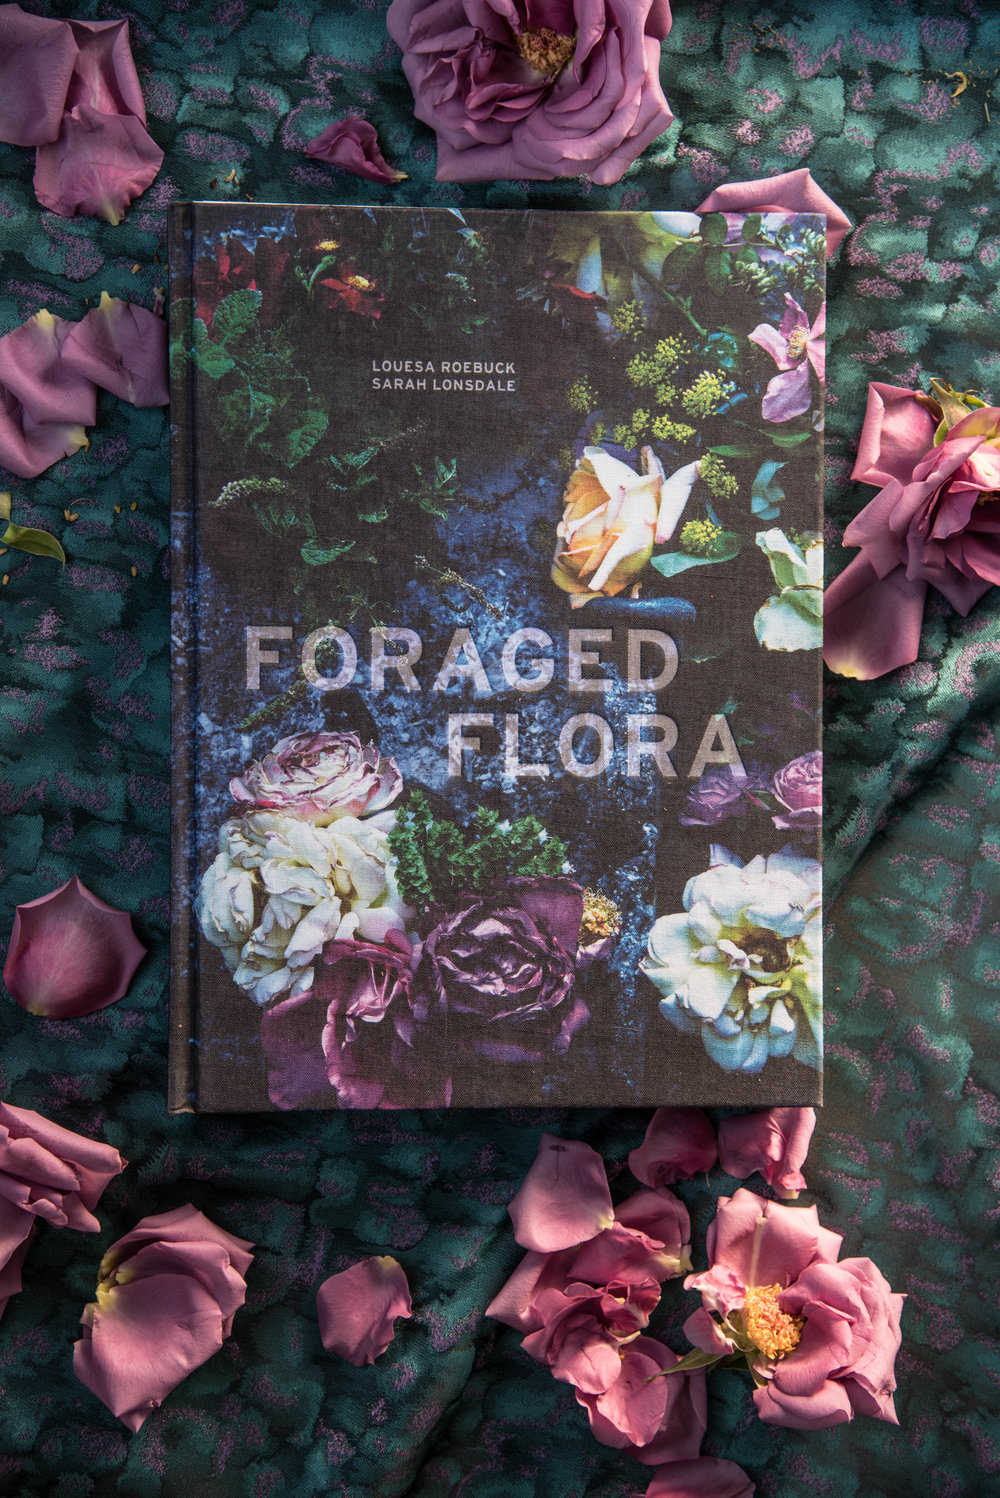 ROSE & IVY Journal Gift Guide 2016 The Mood Dark Florals FORAGED FLORA Book